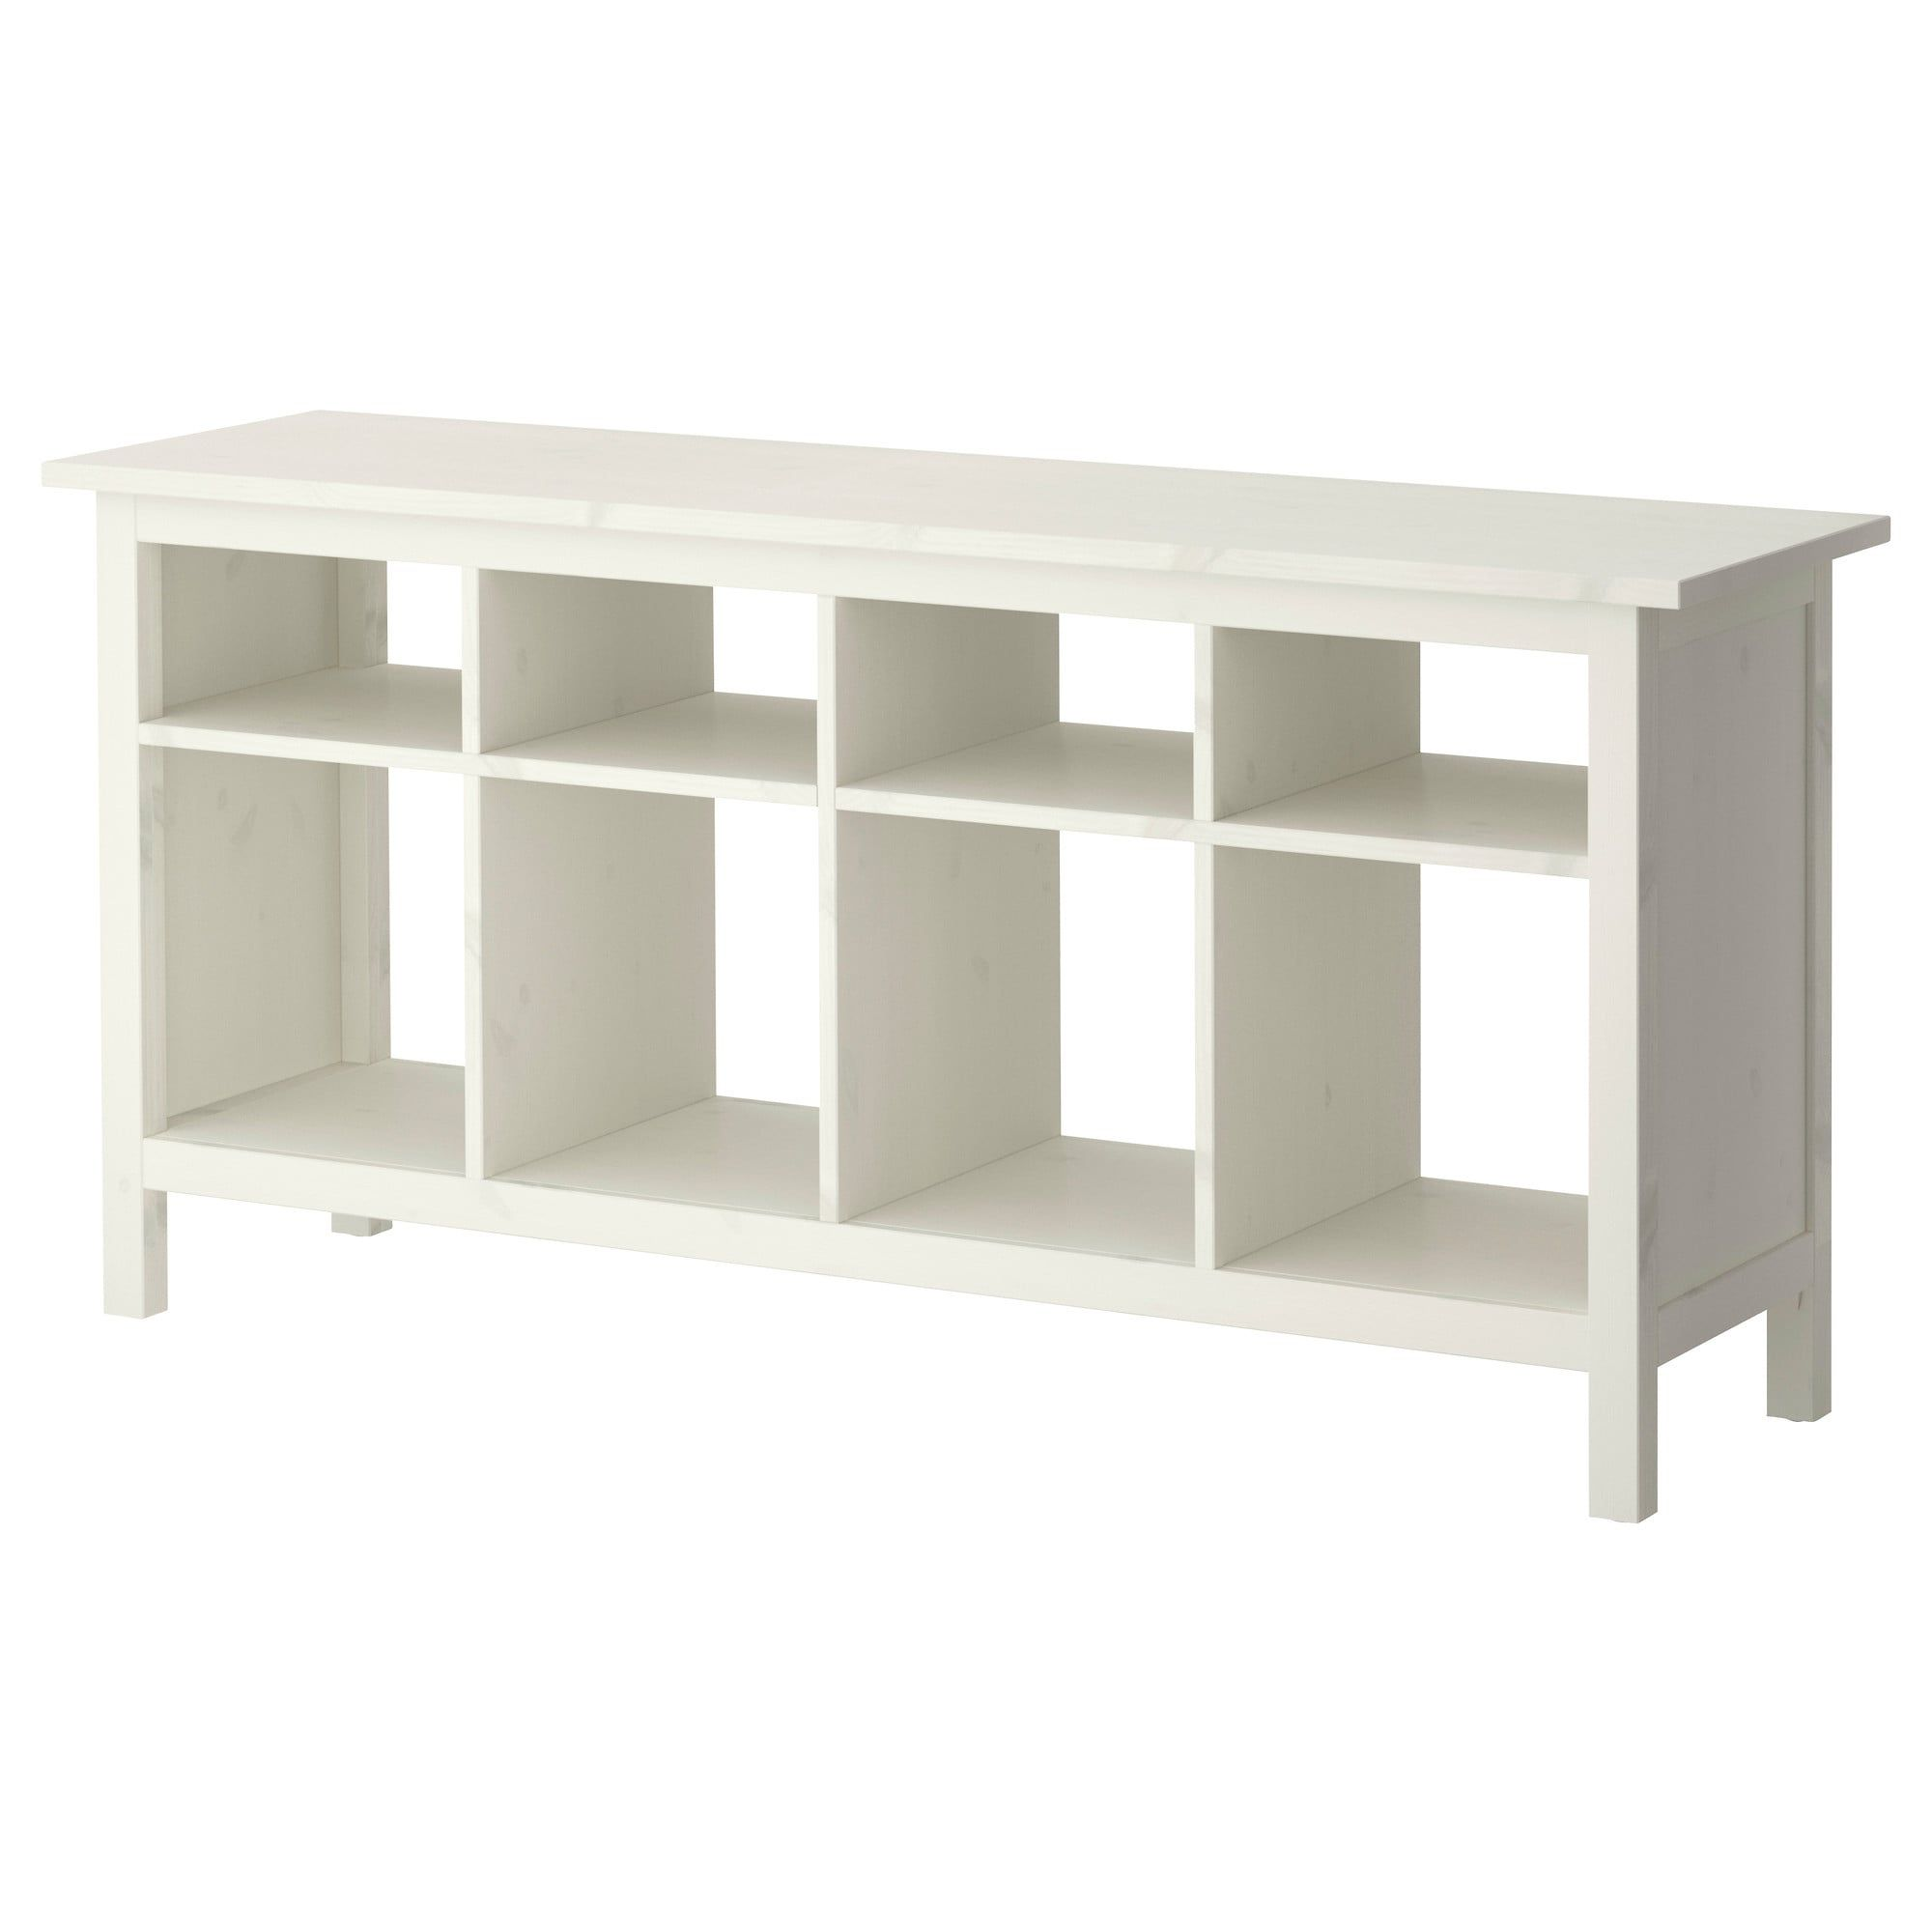 Ikea Hemnes White Stain Console Table In 2020 Ikea Sofa Table Ikea Sofa Ikea